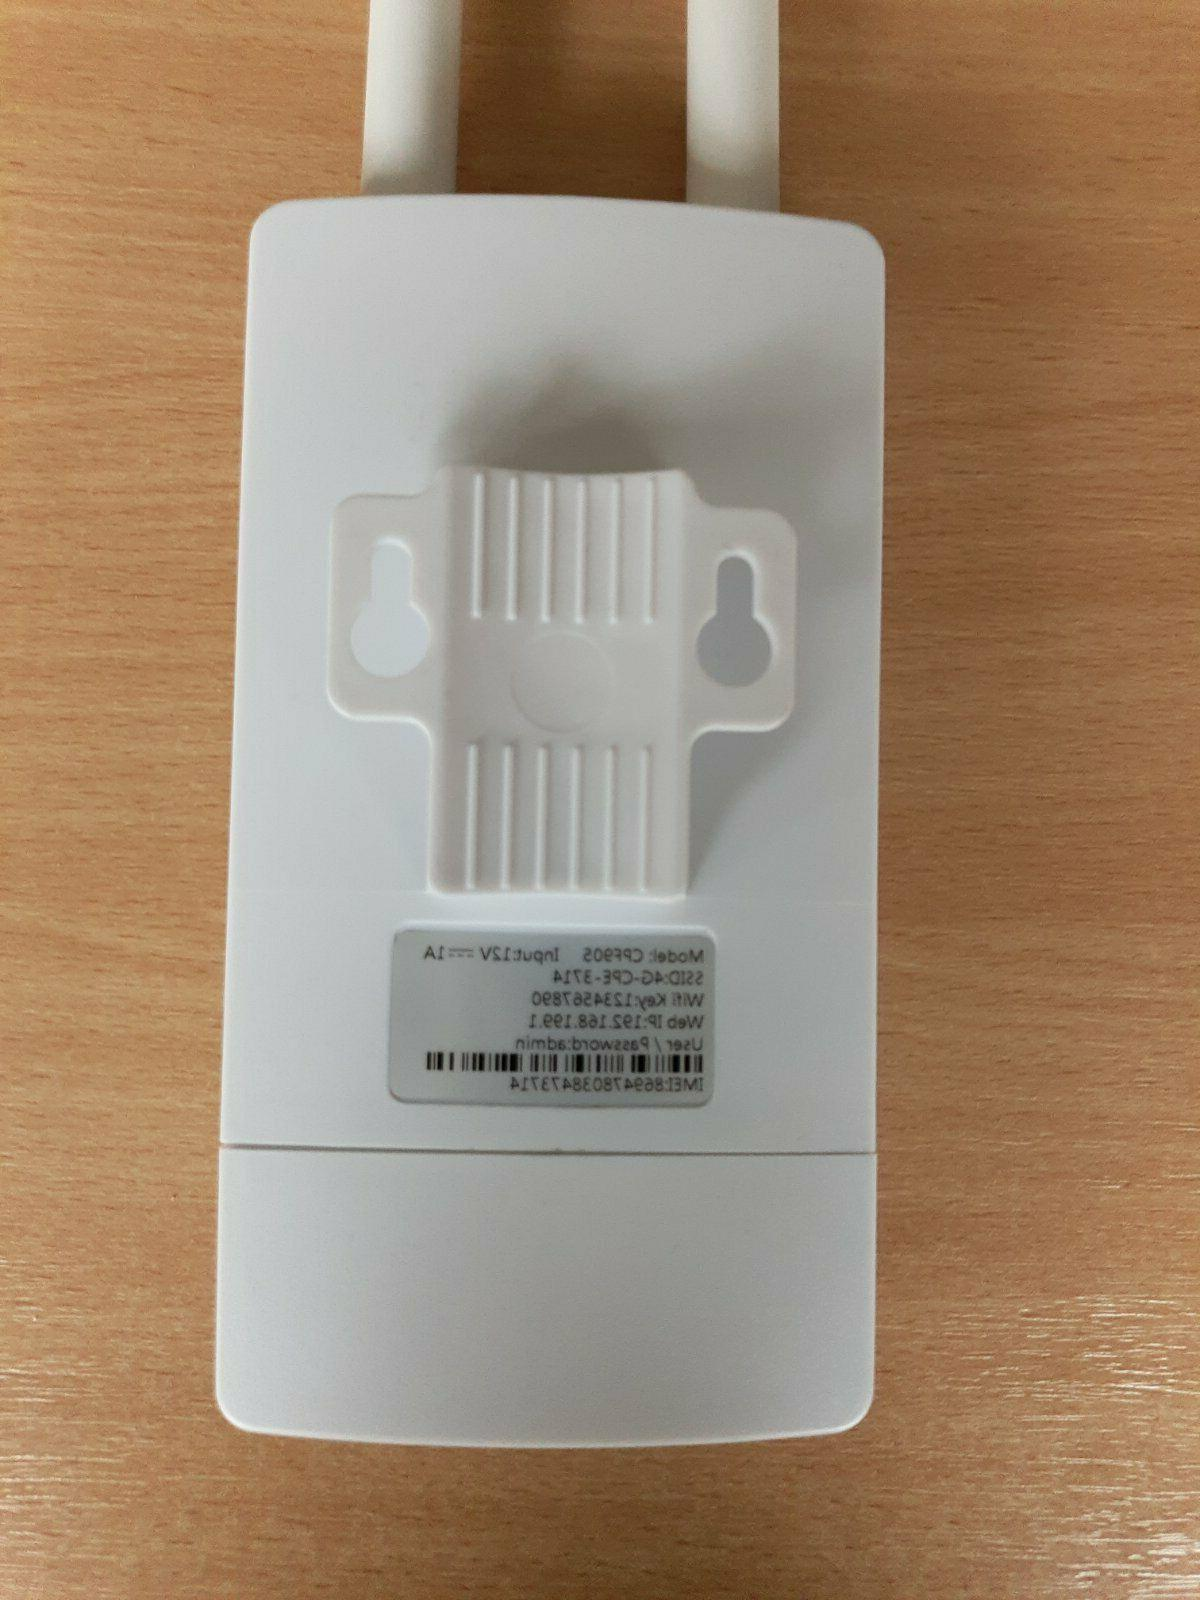 4G Outdoor CPE WiFi Mbps All 4G LTE